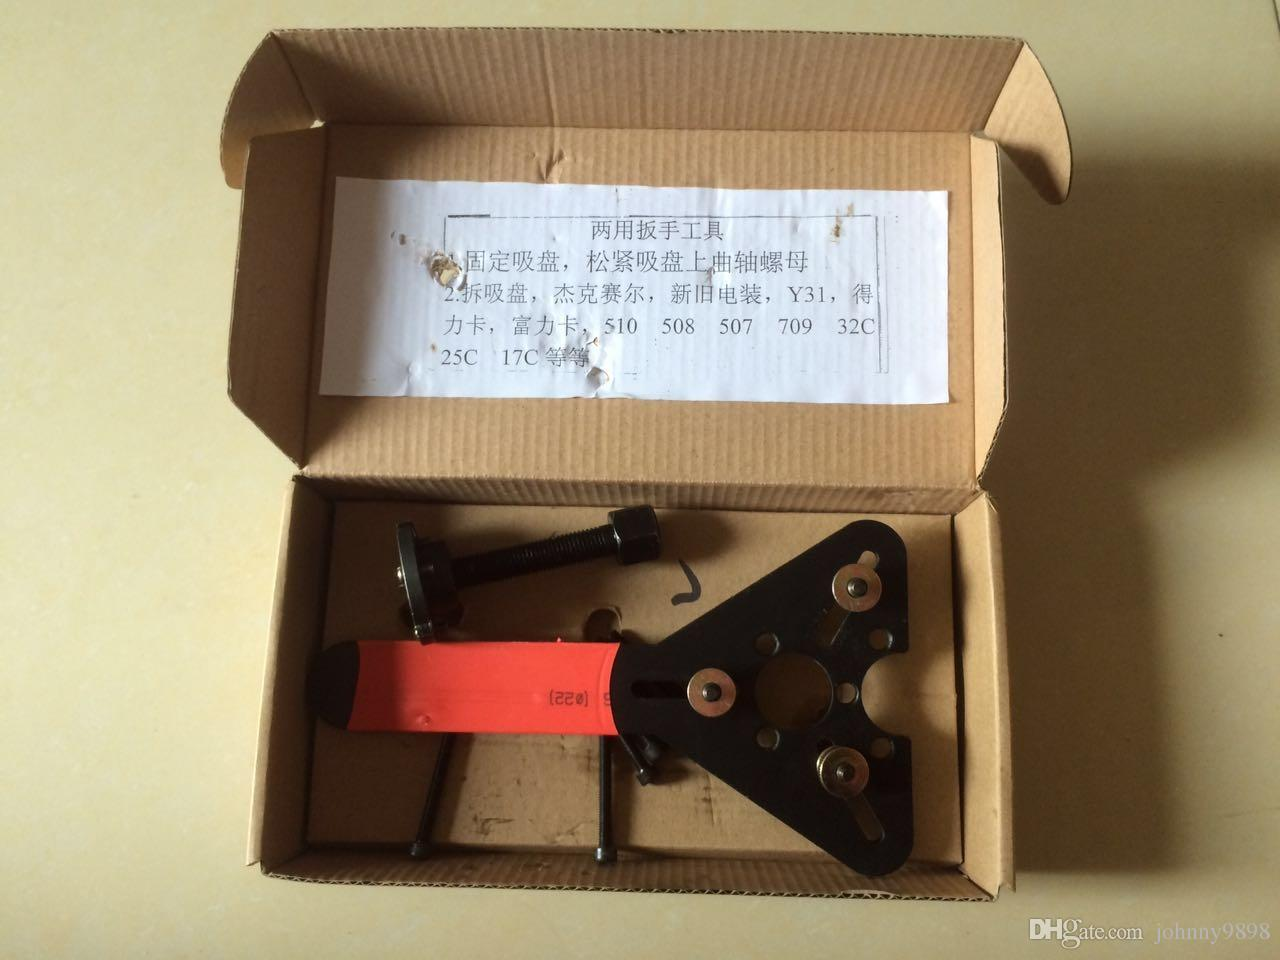 Auto AC part tool R134a R12 Compressor Clutch Demolition Tools Combination Wrenches Automotive Air Conditioning Repair Tools